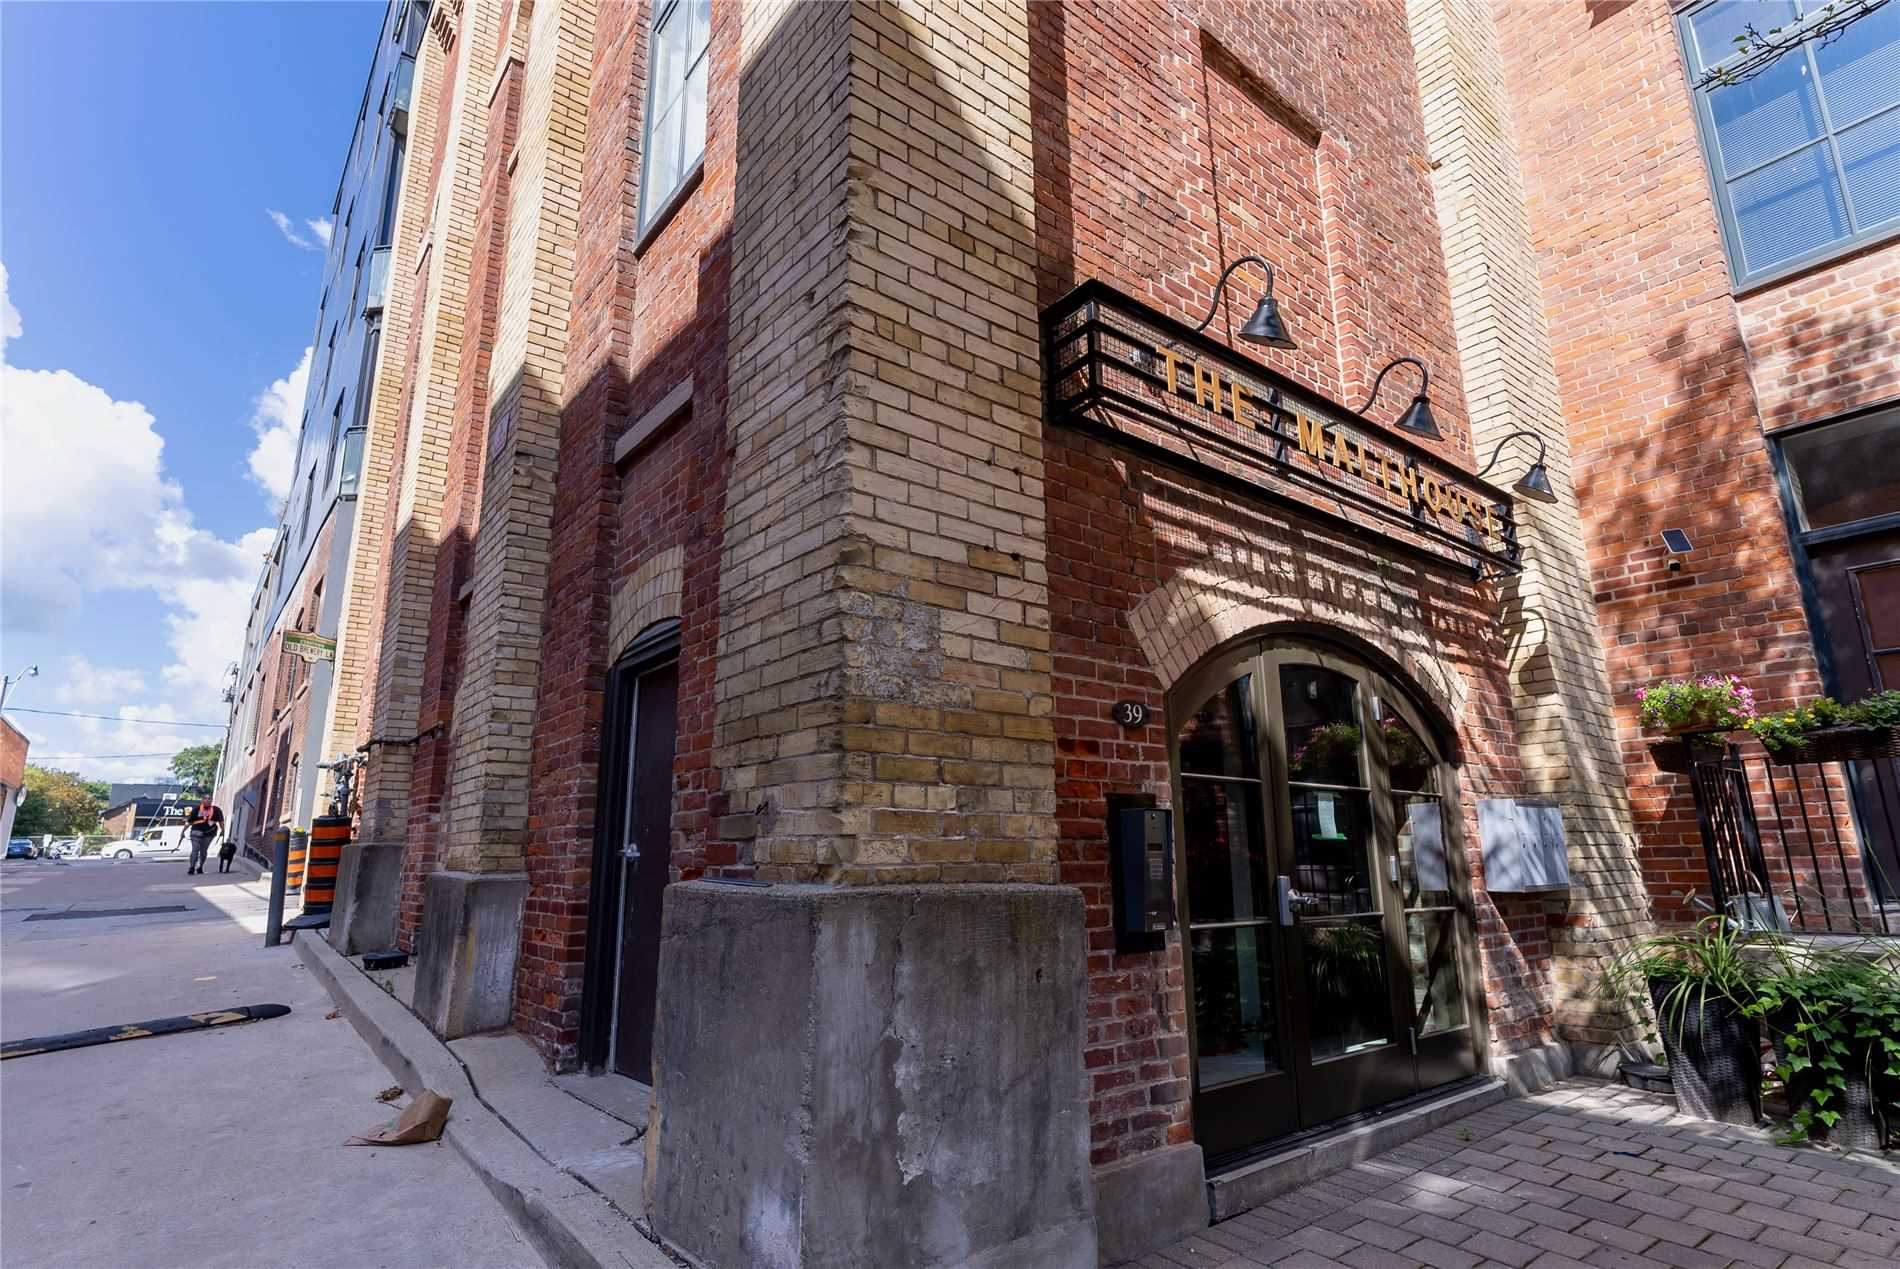 Condo Townhouse For Lease In Toronto , 3 Bedrooms Bedrooms, ,2 BathroomsBathrooms,Condo Townhouse,For Lease,4,Old Brewery